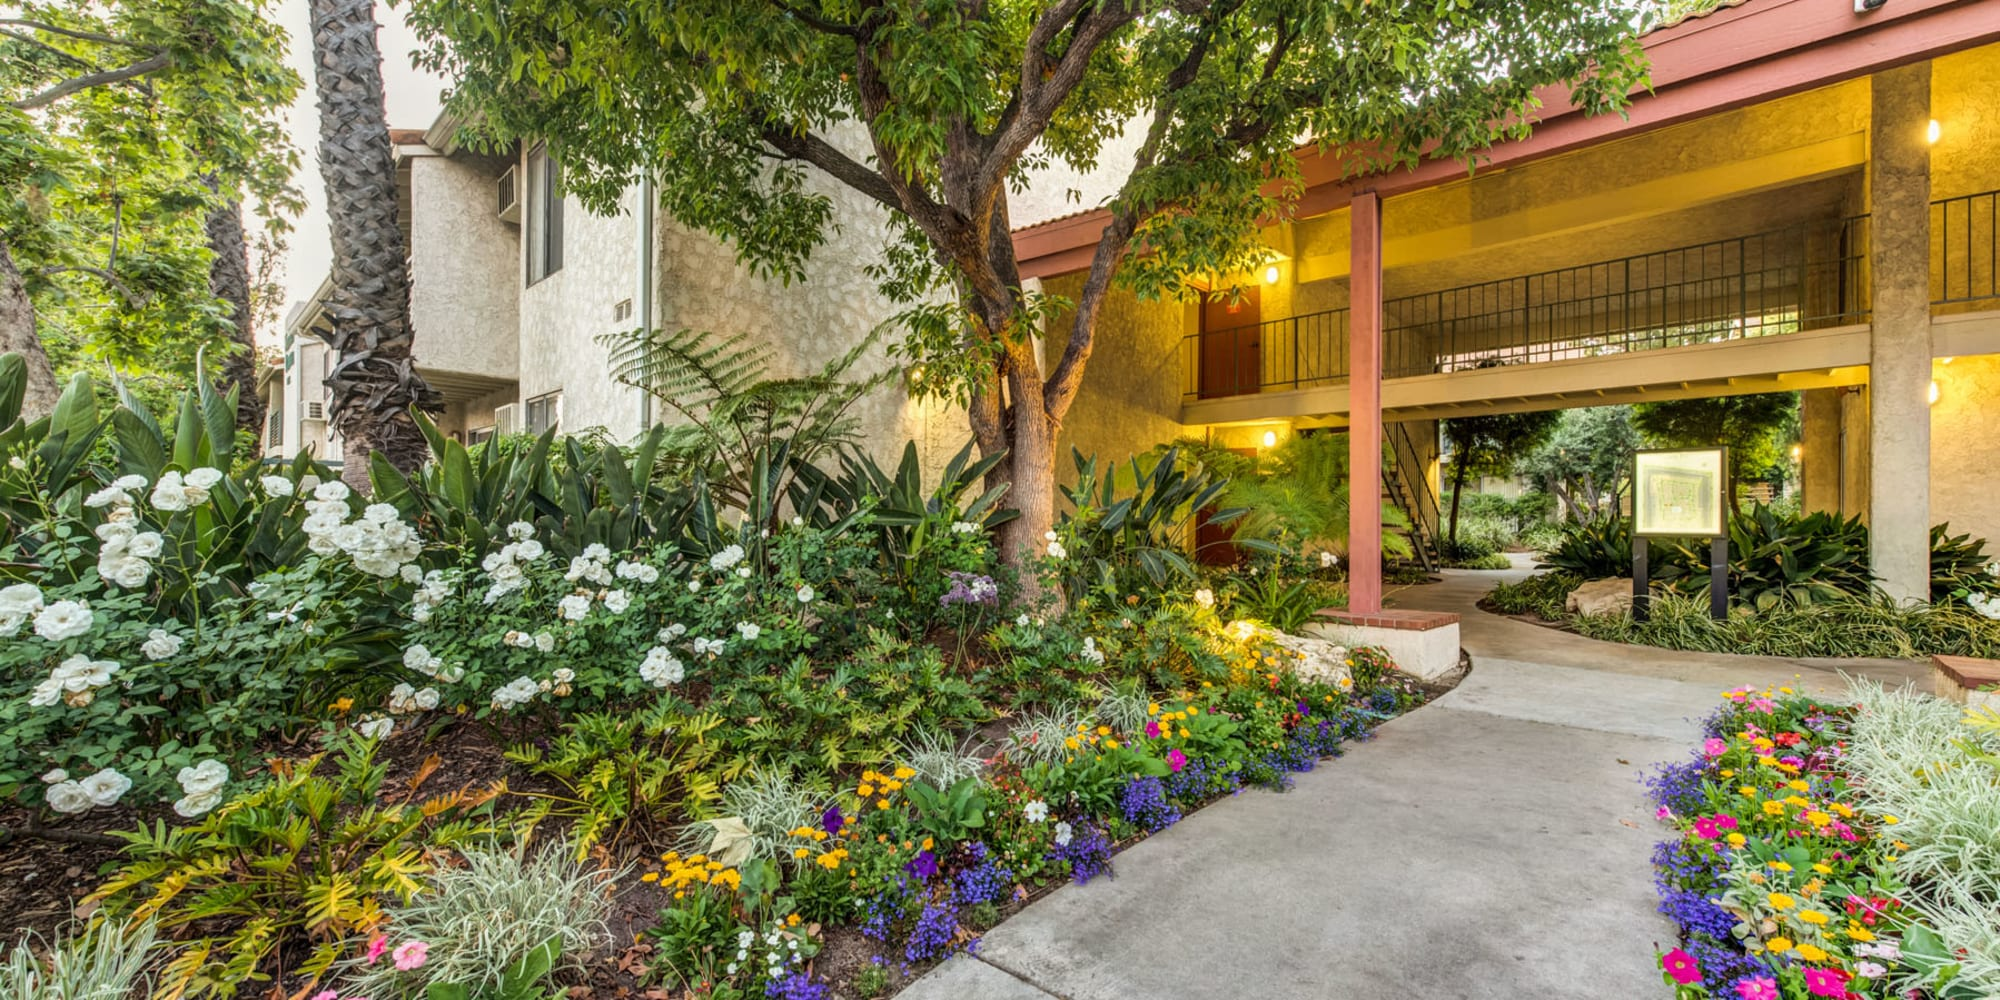 Beautifully maintained landscaping along a pathway leading to resident buildings at Village Pointe in Northridge, California